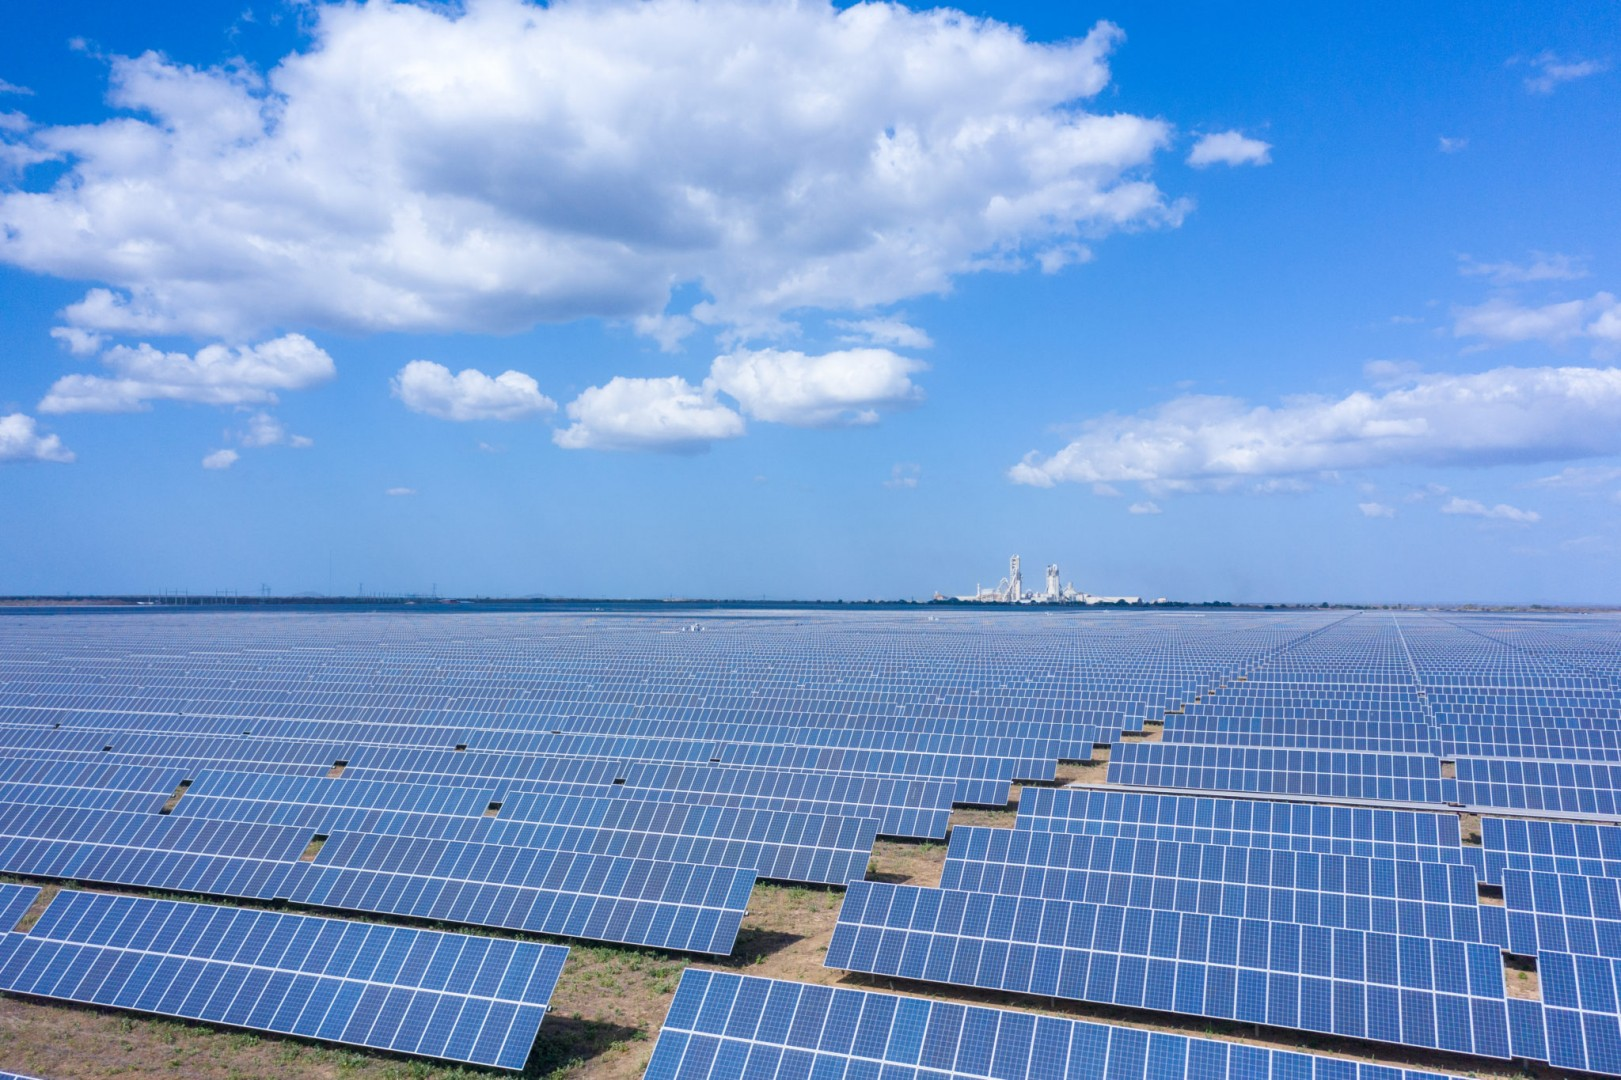 The 162MW Apodi solar farm developed by Scatec and Equinor in Brazil two years ago. Image: Scatec.